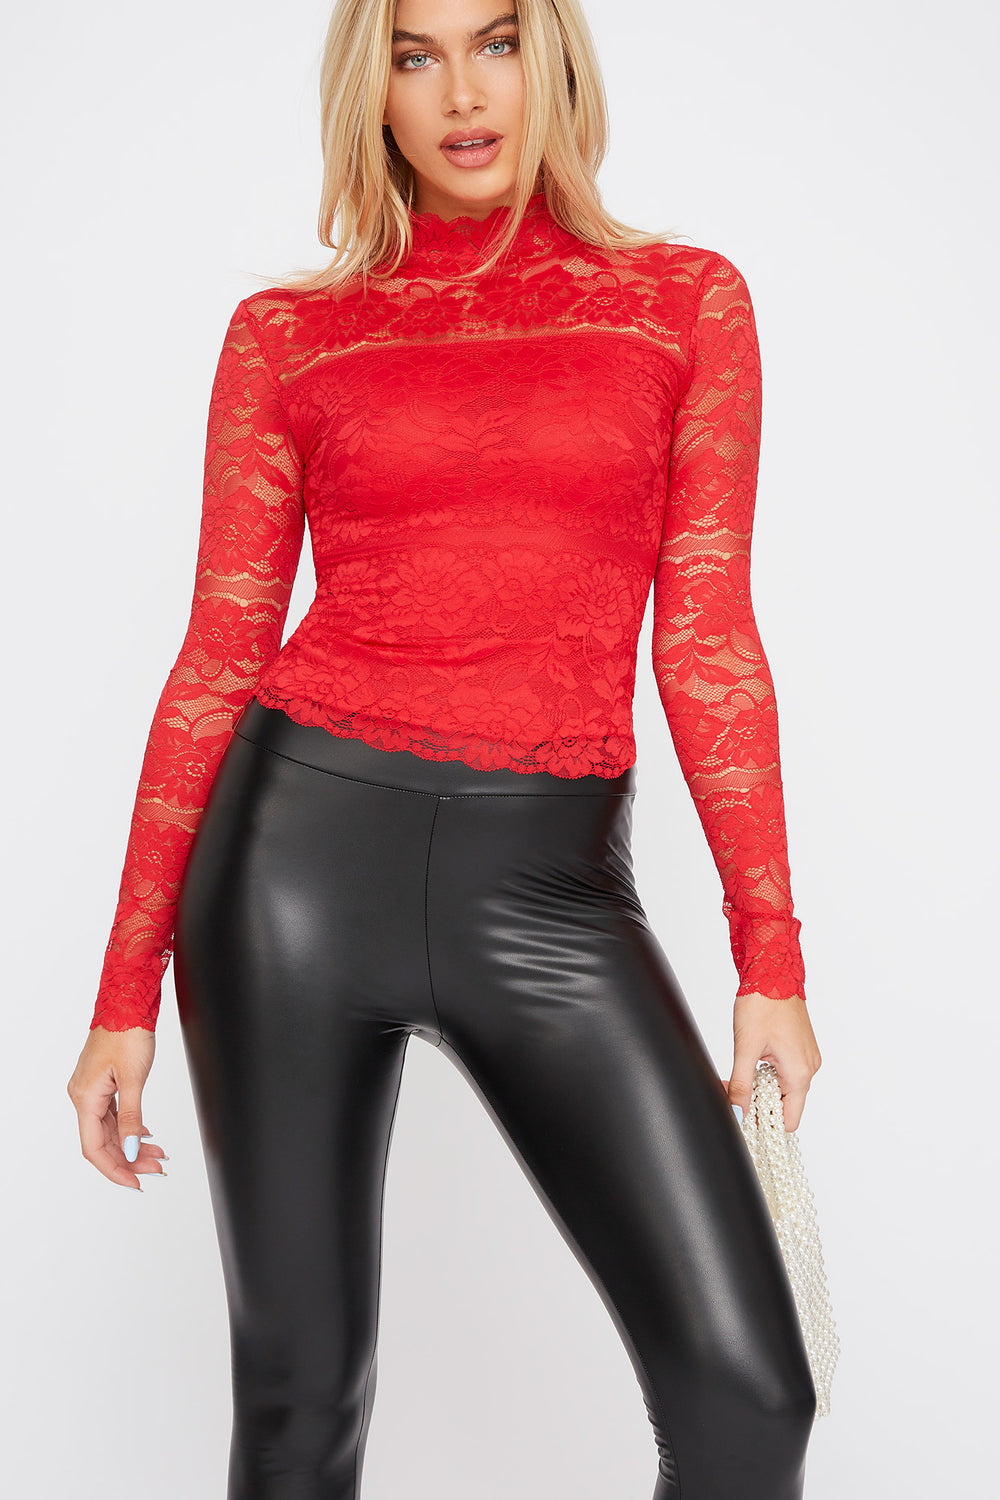 Lace Mock Neck Long Sleeve Bright Red